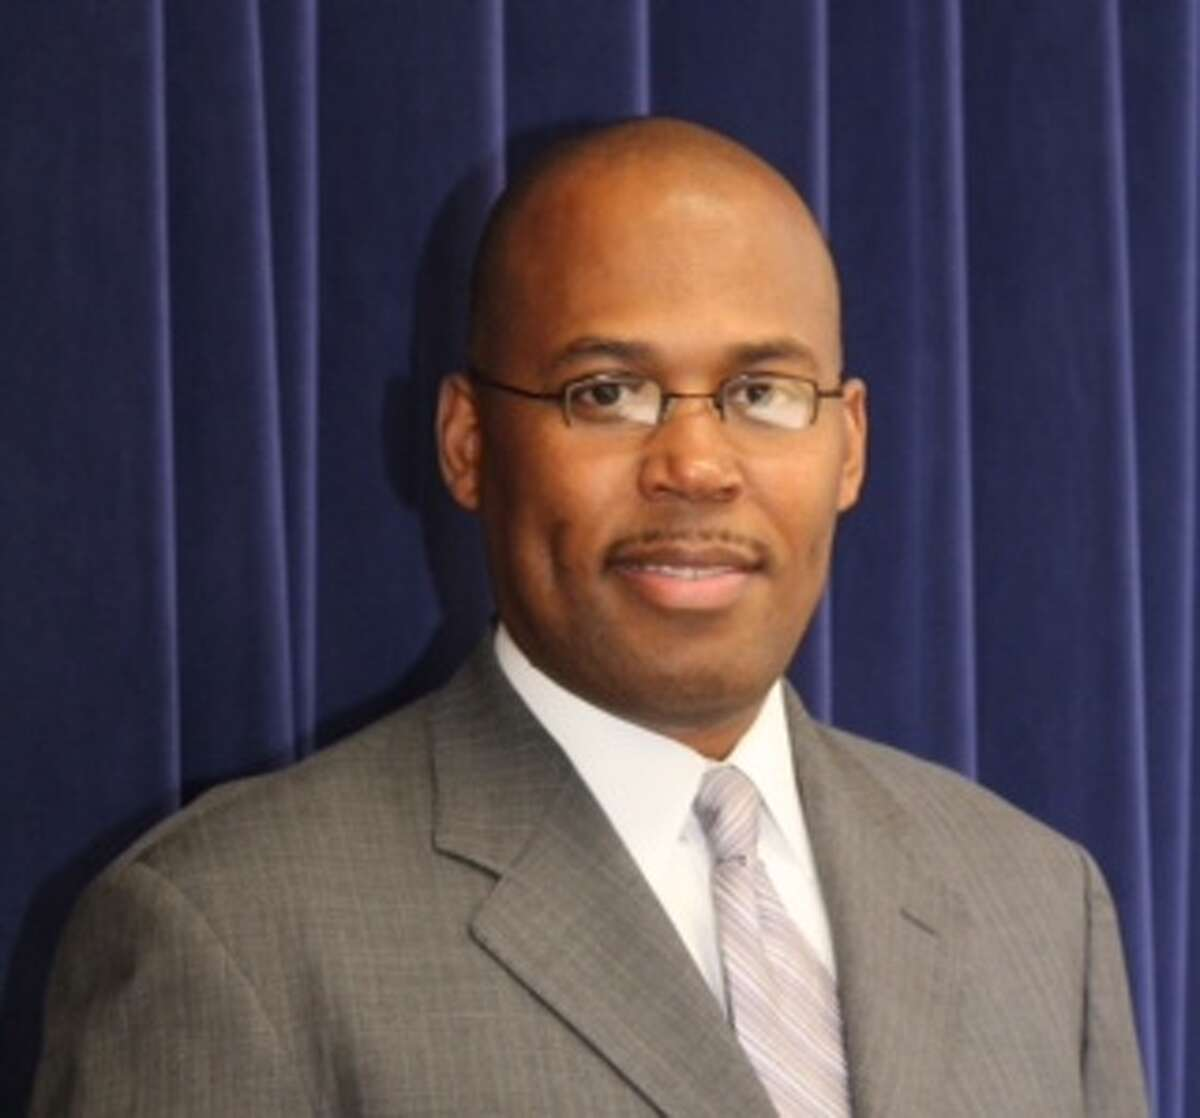 Before being named Spring's school superintendent, Rodney Watson served as HISD's chief human resources officer.